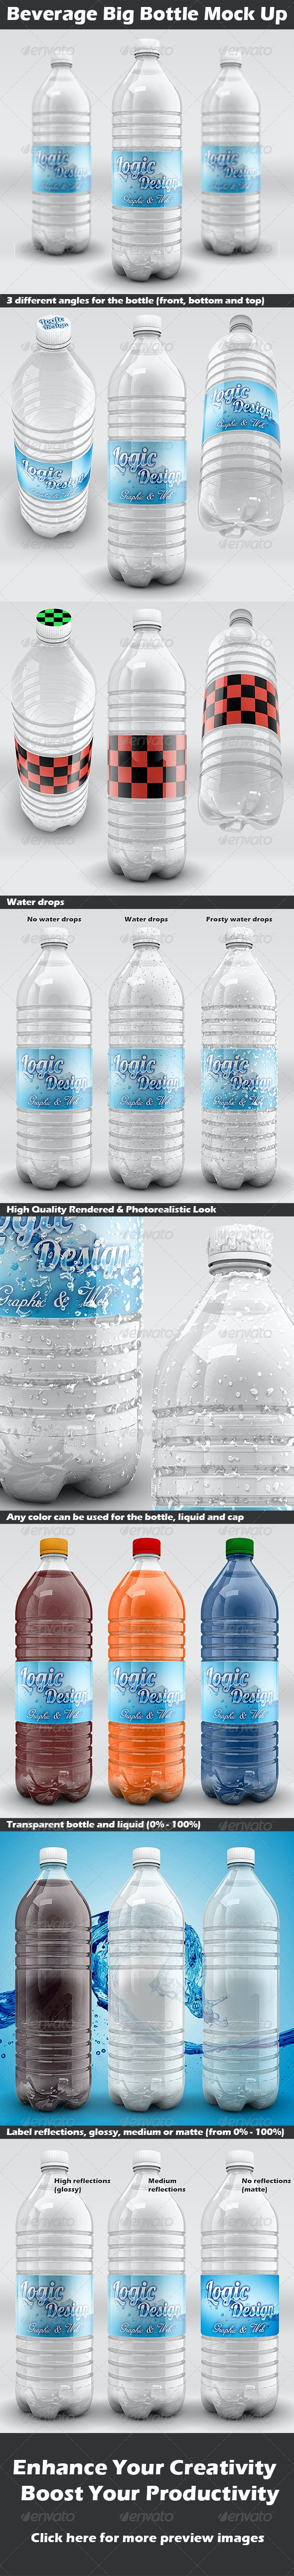 Beverage Big Bottle Mock Up - Food and Drink Packaging